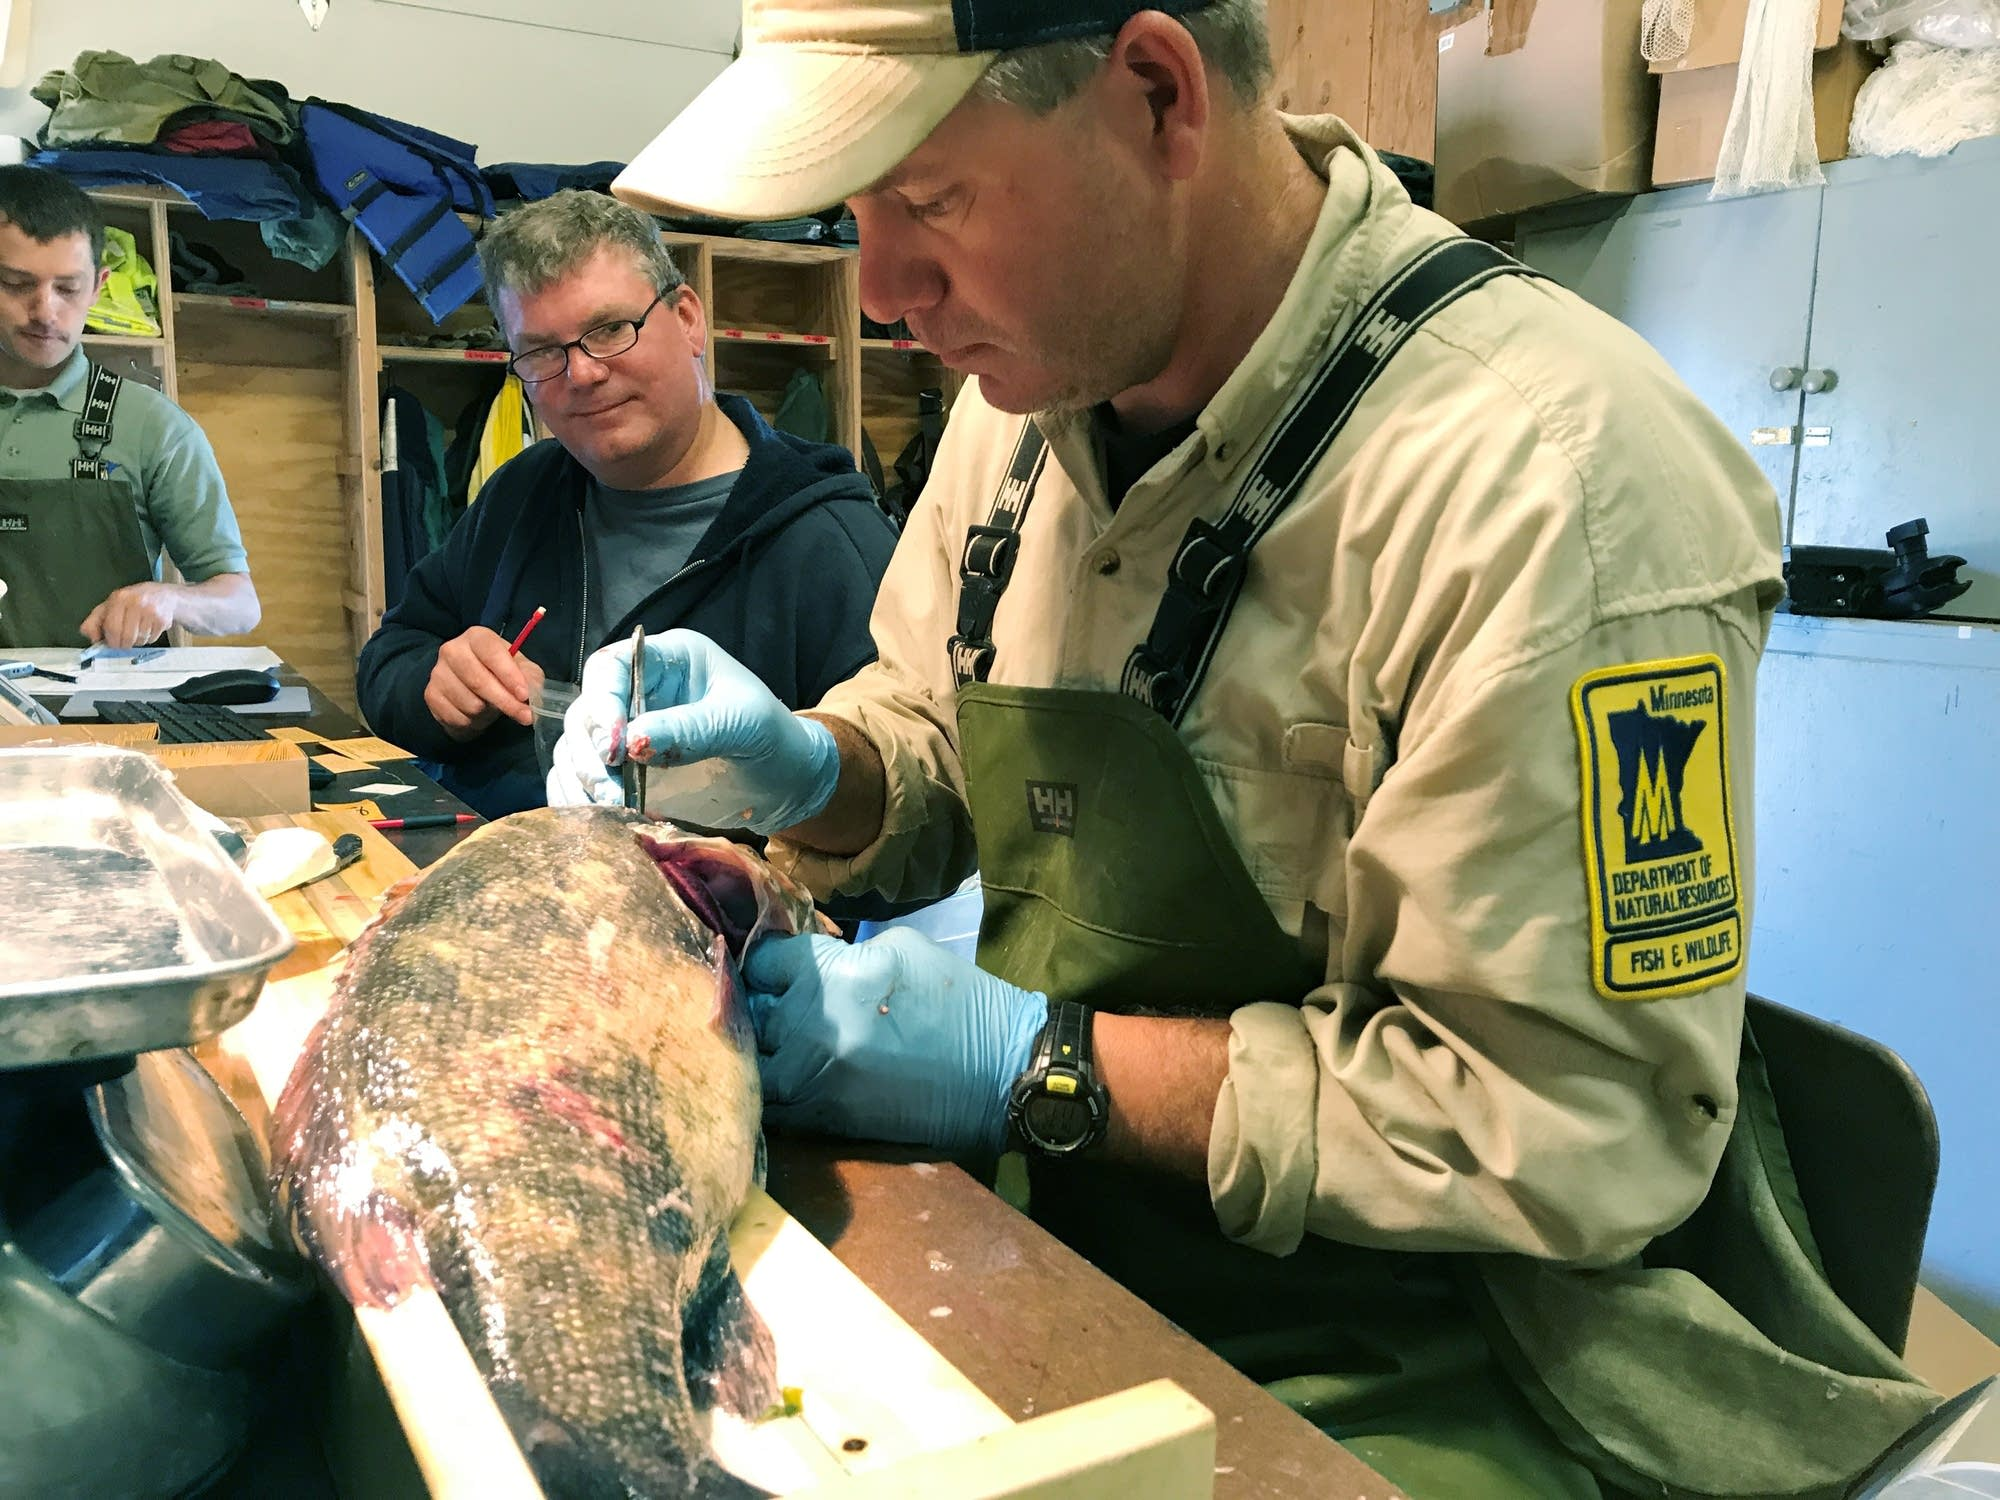 Assistant fisheries technician Kris Nissen takes samples from a fish.